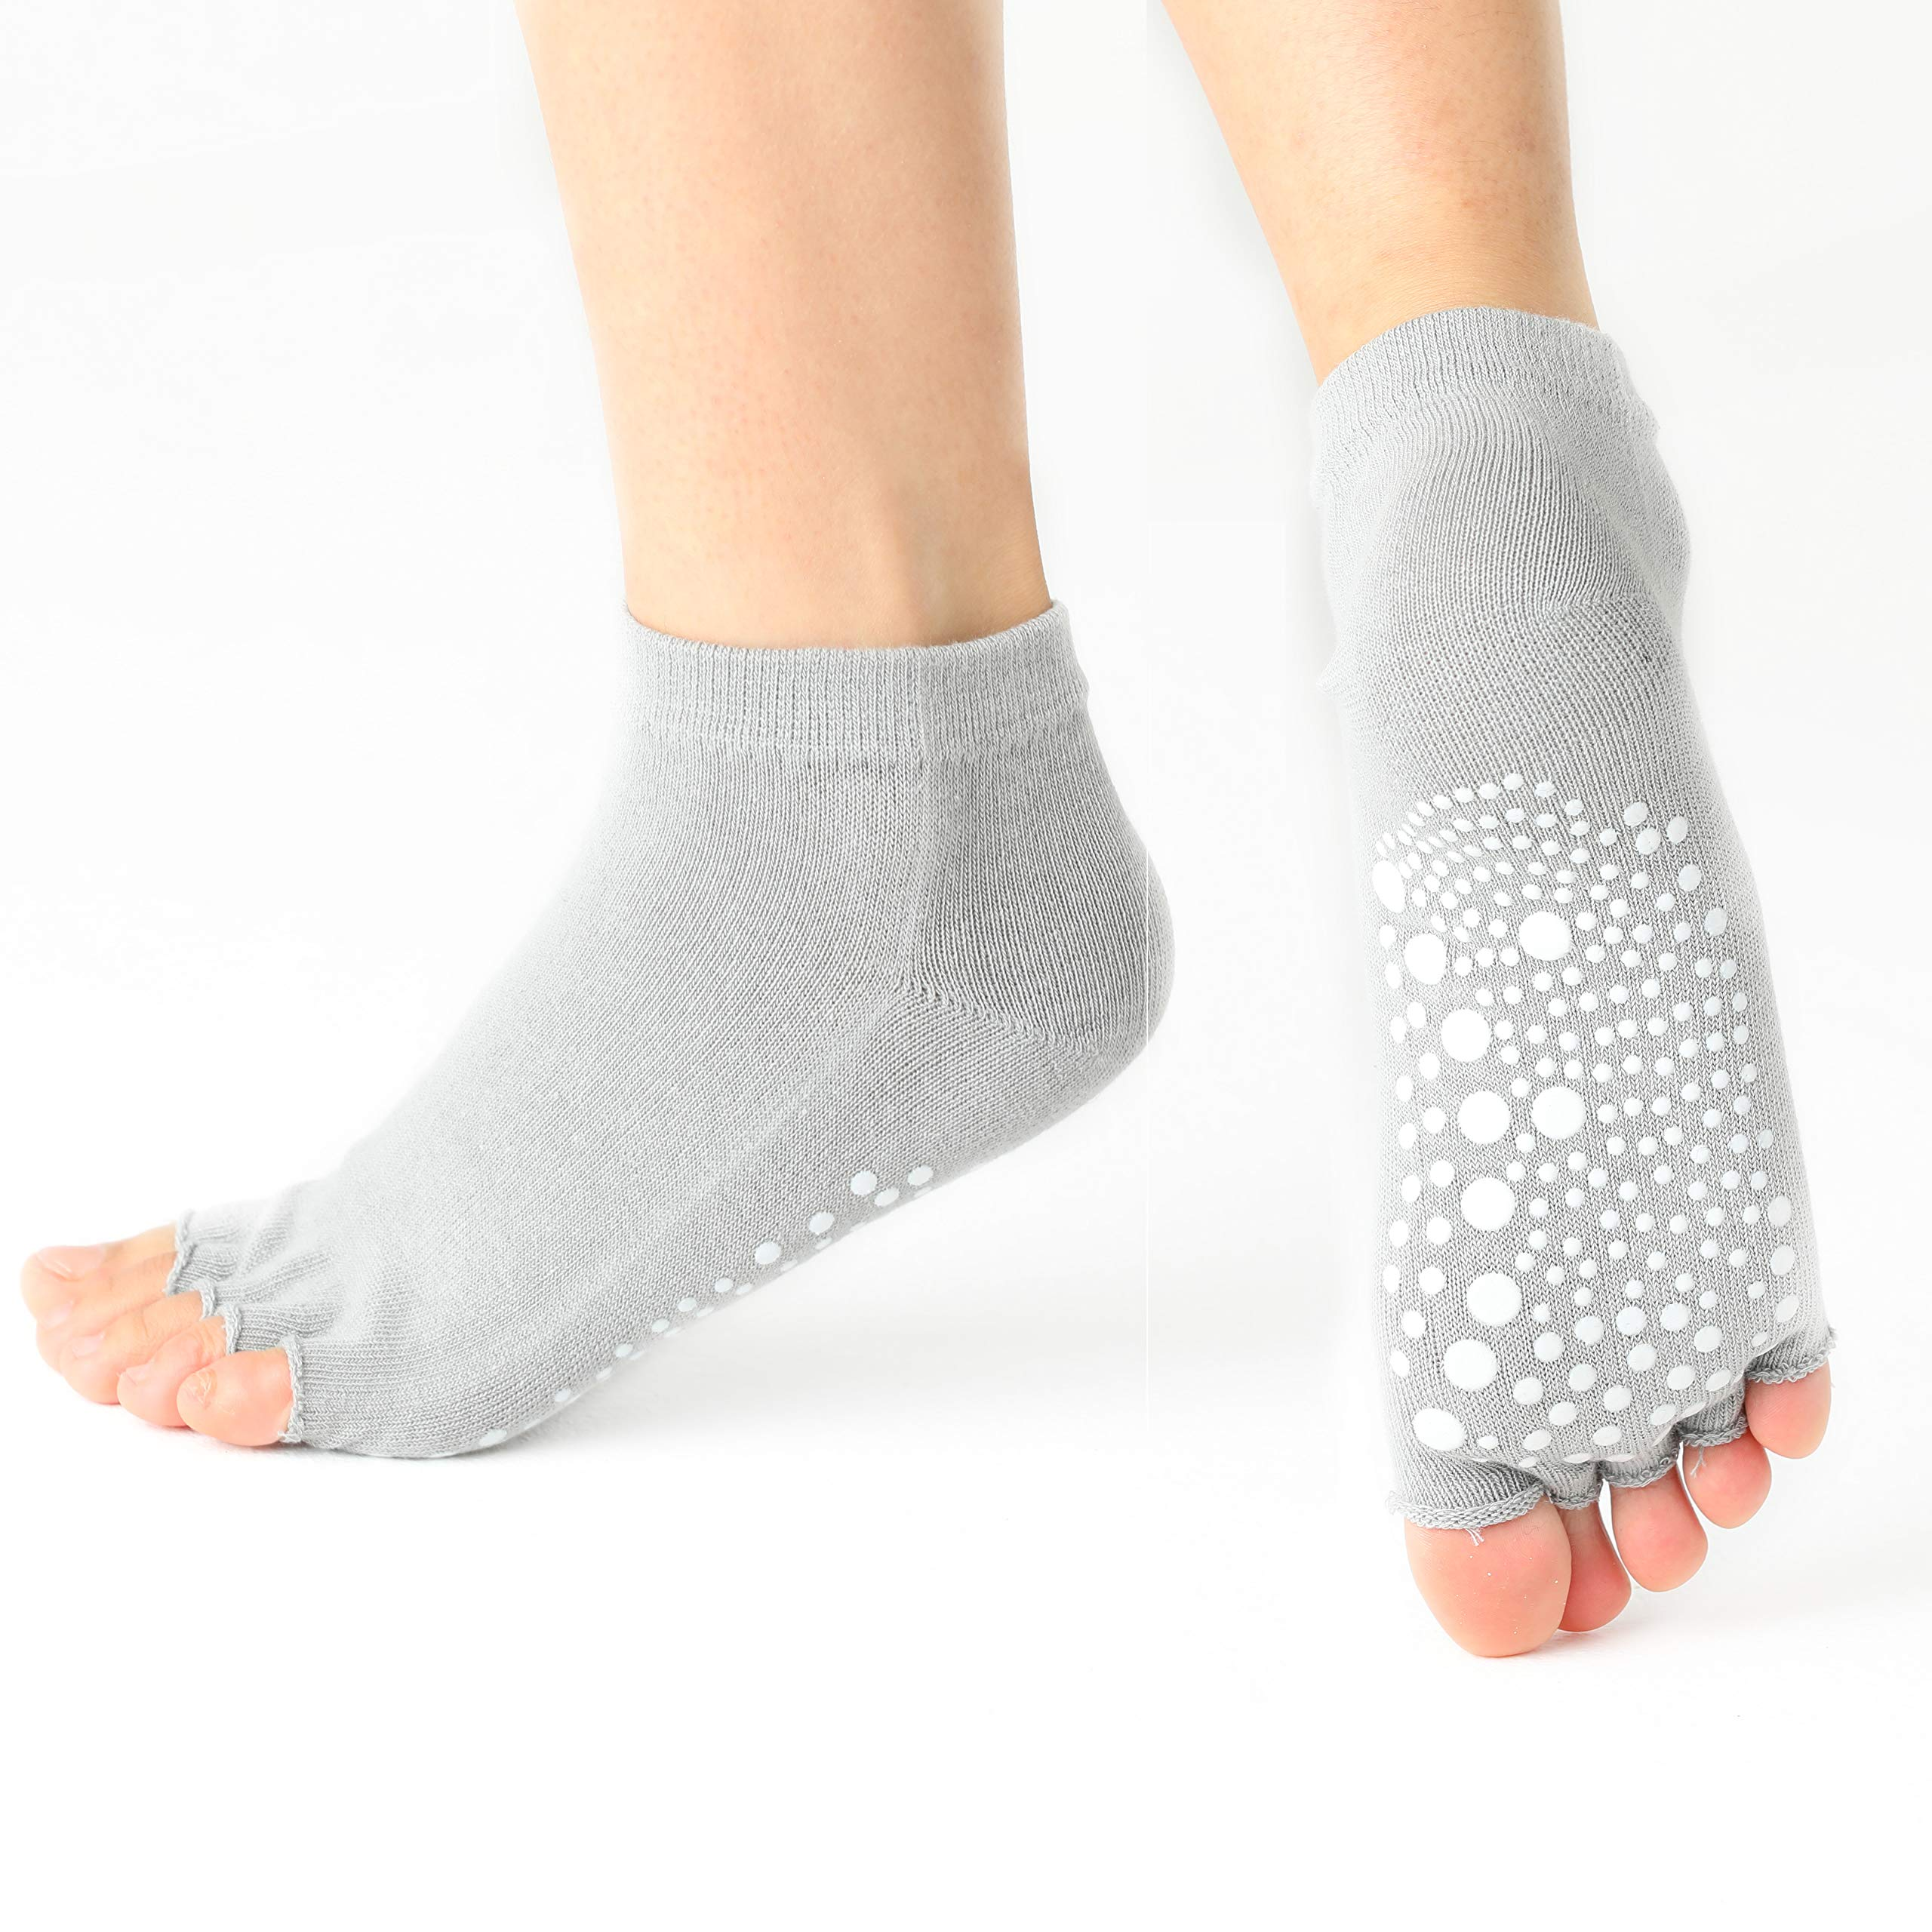 Yoga Socks for Extra Grip in Standard or Hot Yoga, Grey (3 Pair)